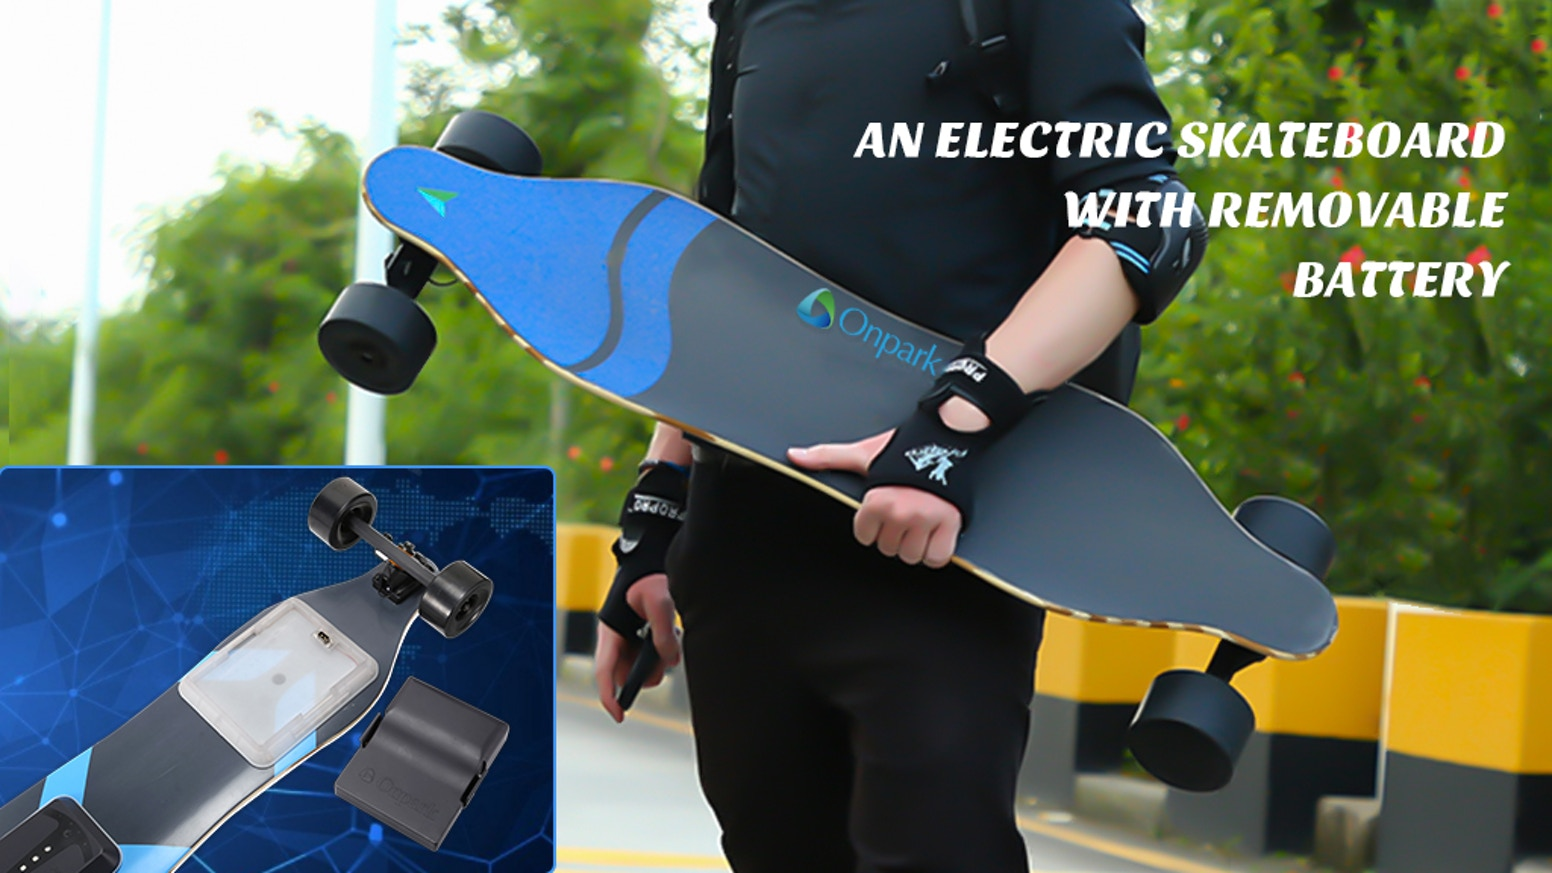 With unique patented design, the Samsung battery could be quick replaced. Onpark makes you enjoy the longest riding to everywhere!